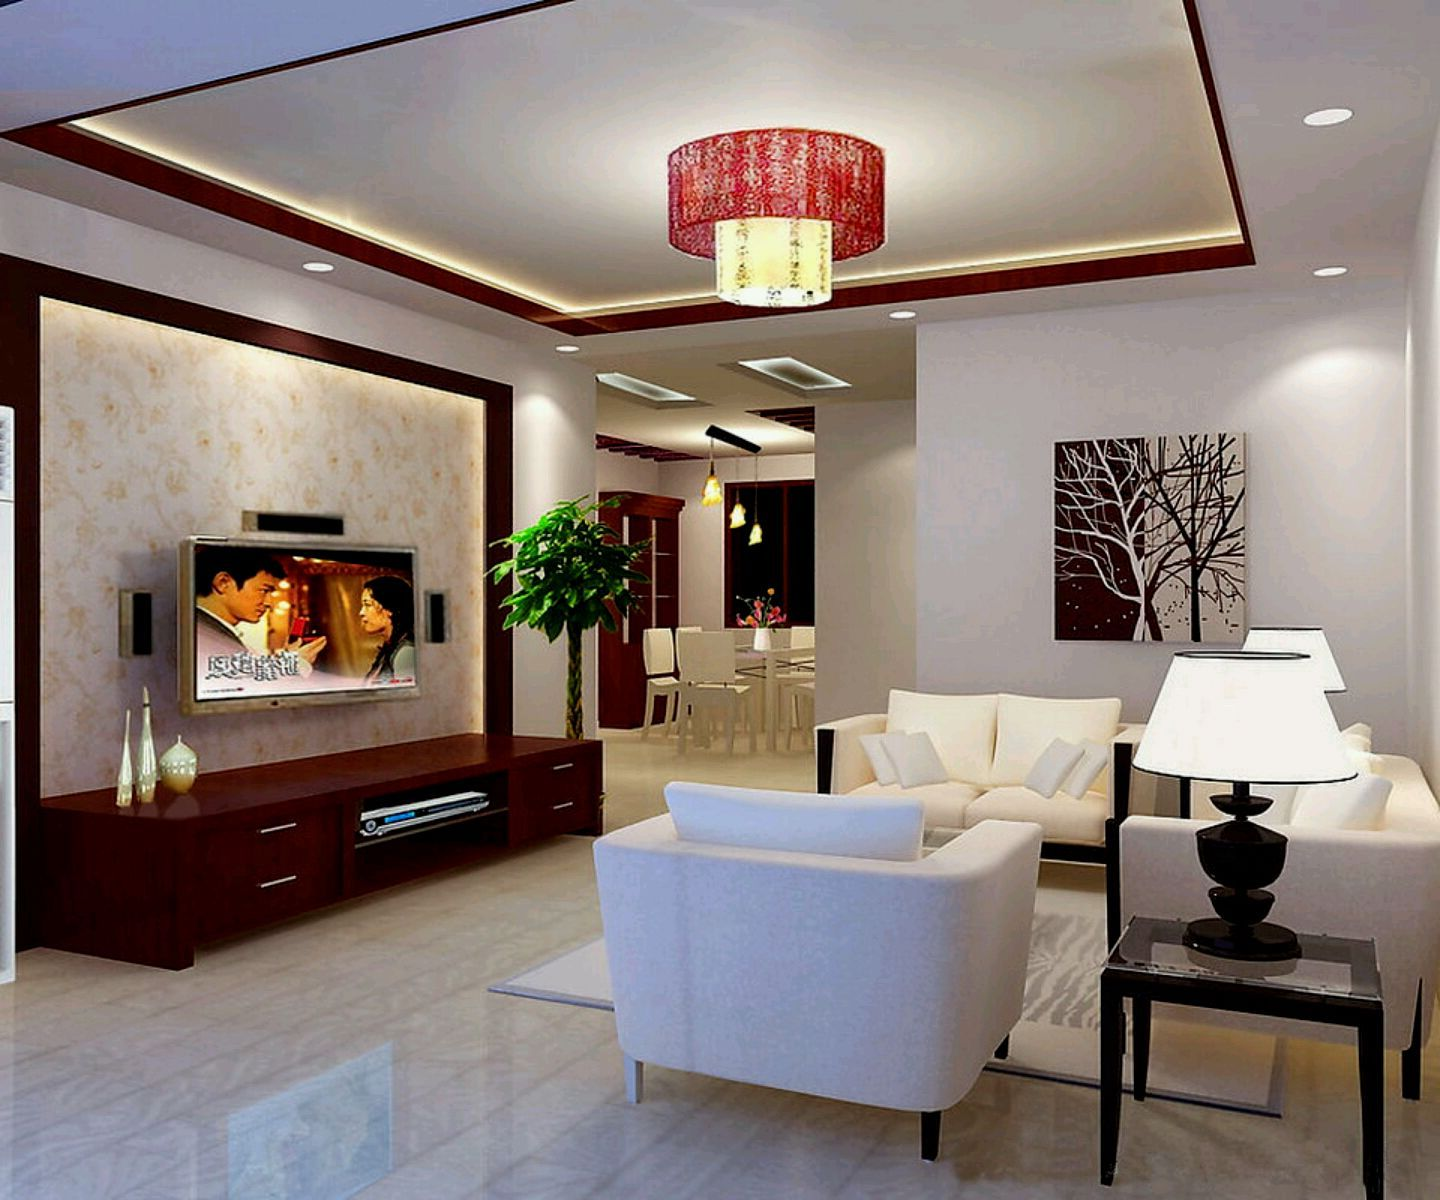 Ceiling Designs For Bedrooms Captivating Ceilingdesignfordrawingroominpakistanceilingdesignsfor Design Inspiration